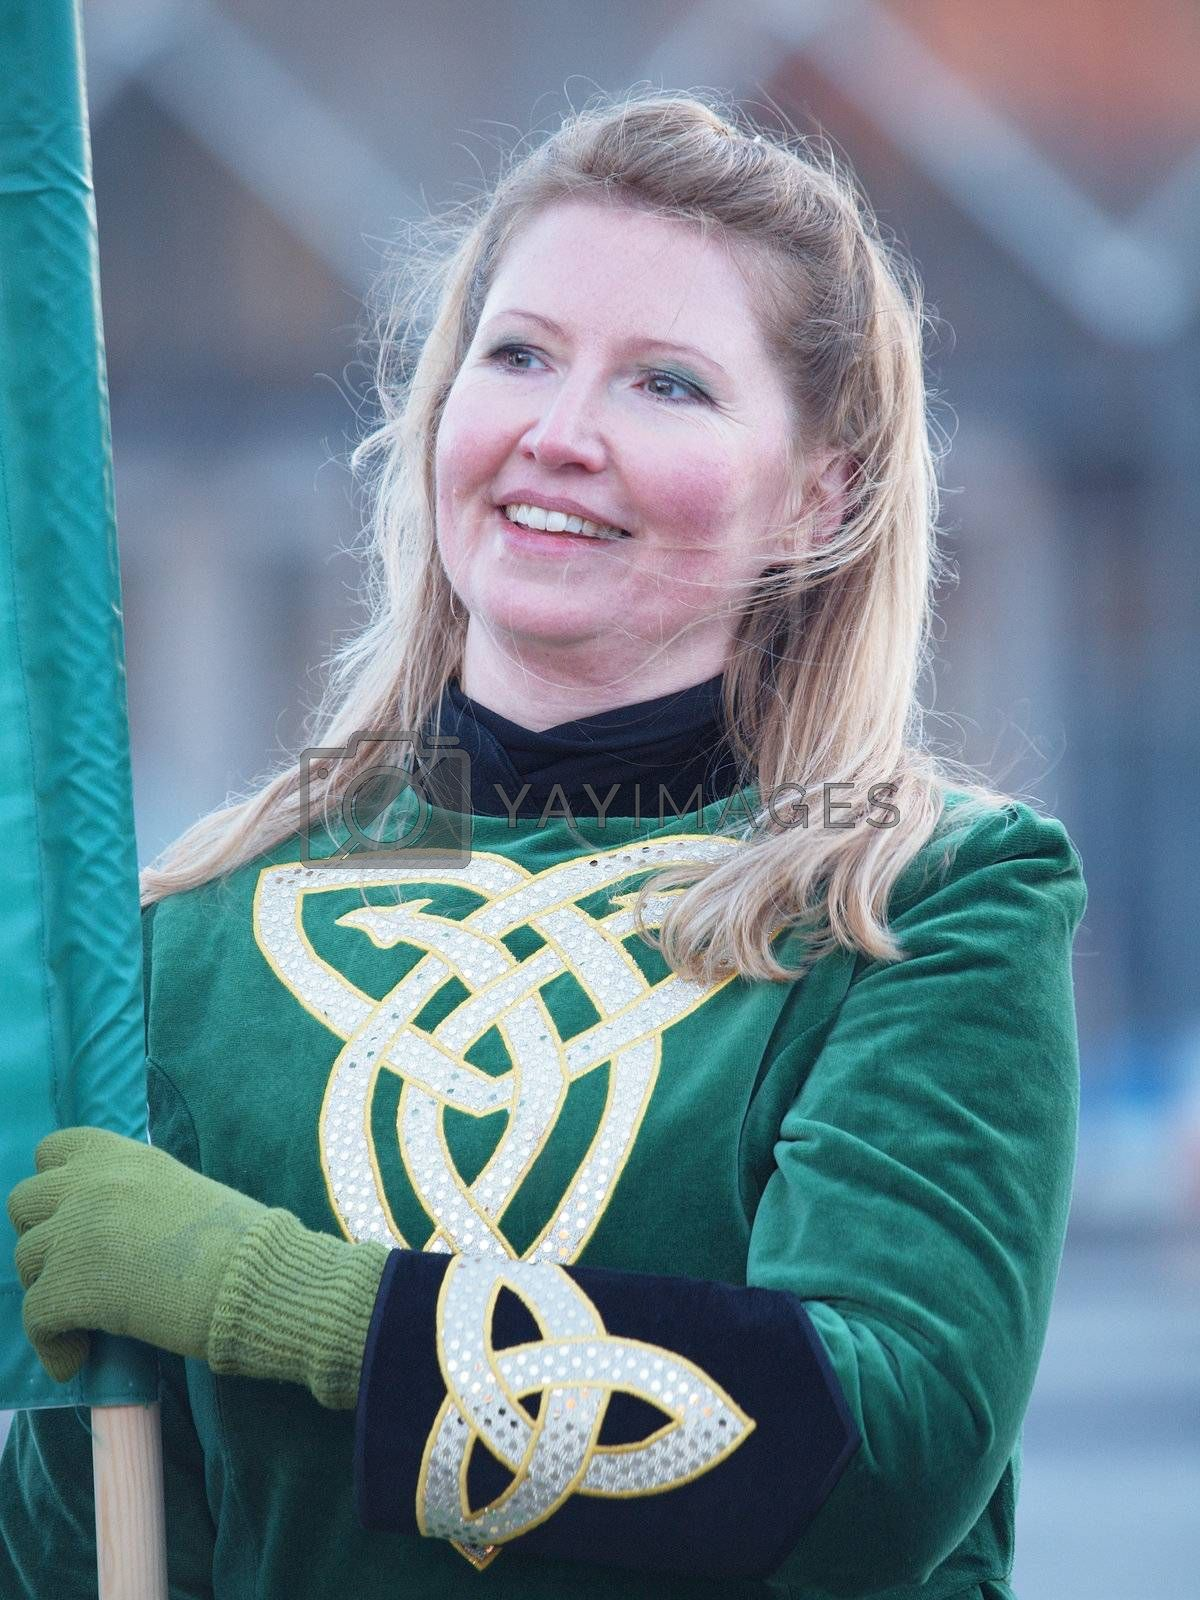 COPENHAGEN - MAR 17: Woman participant in green costume at the annual St. Patrick's Day celebration and parade in front of Copenhagen City Hall, Denmark on March 17, 2013.